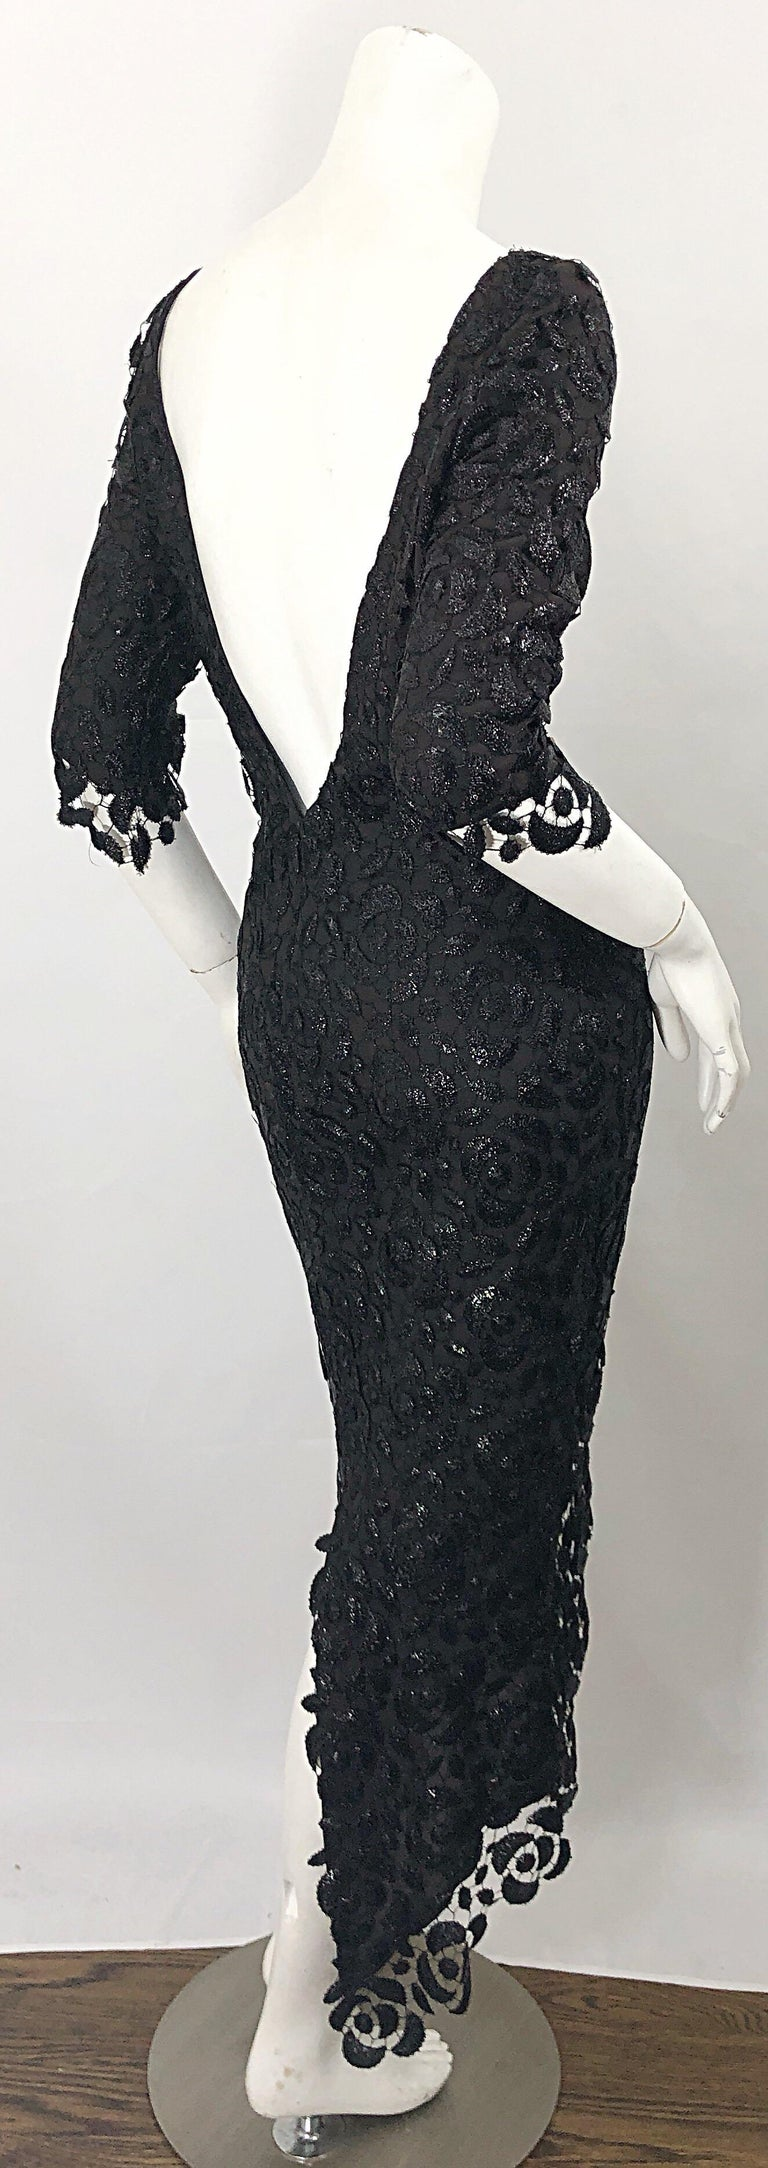 Stunning $10k Vintage Halston Black 3/4 Sleeves Silk Lace Crochet Sz 4 6 Dress For Sale 10